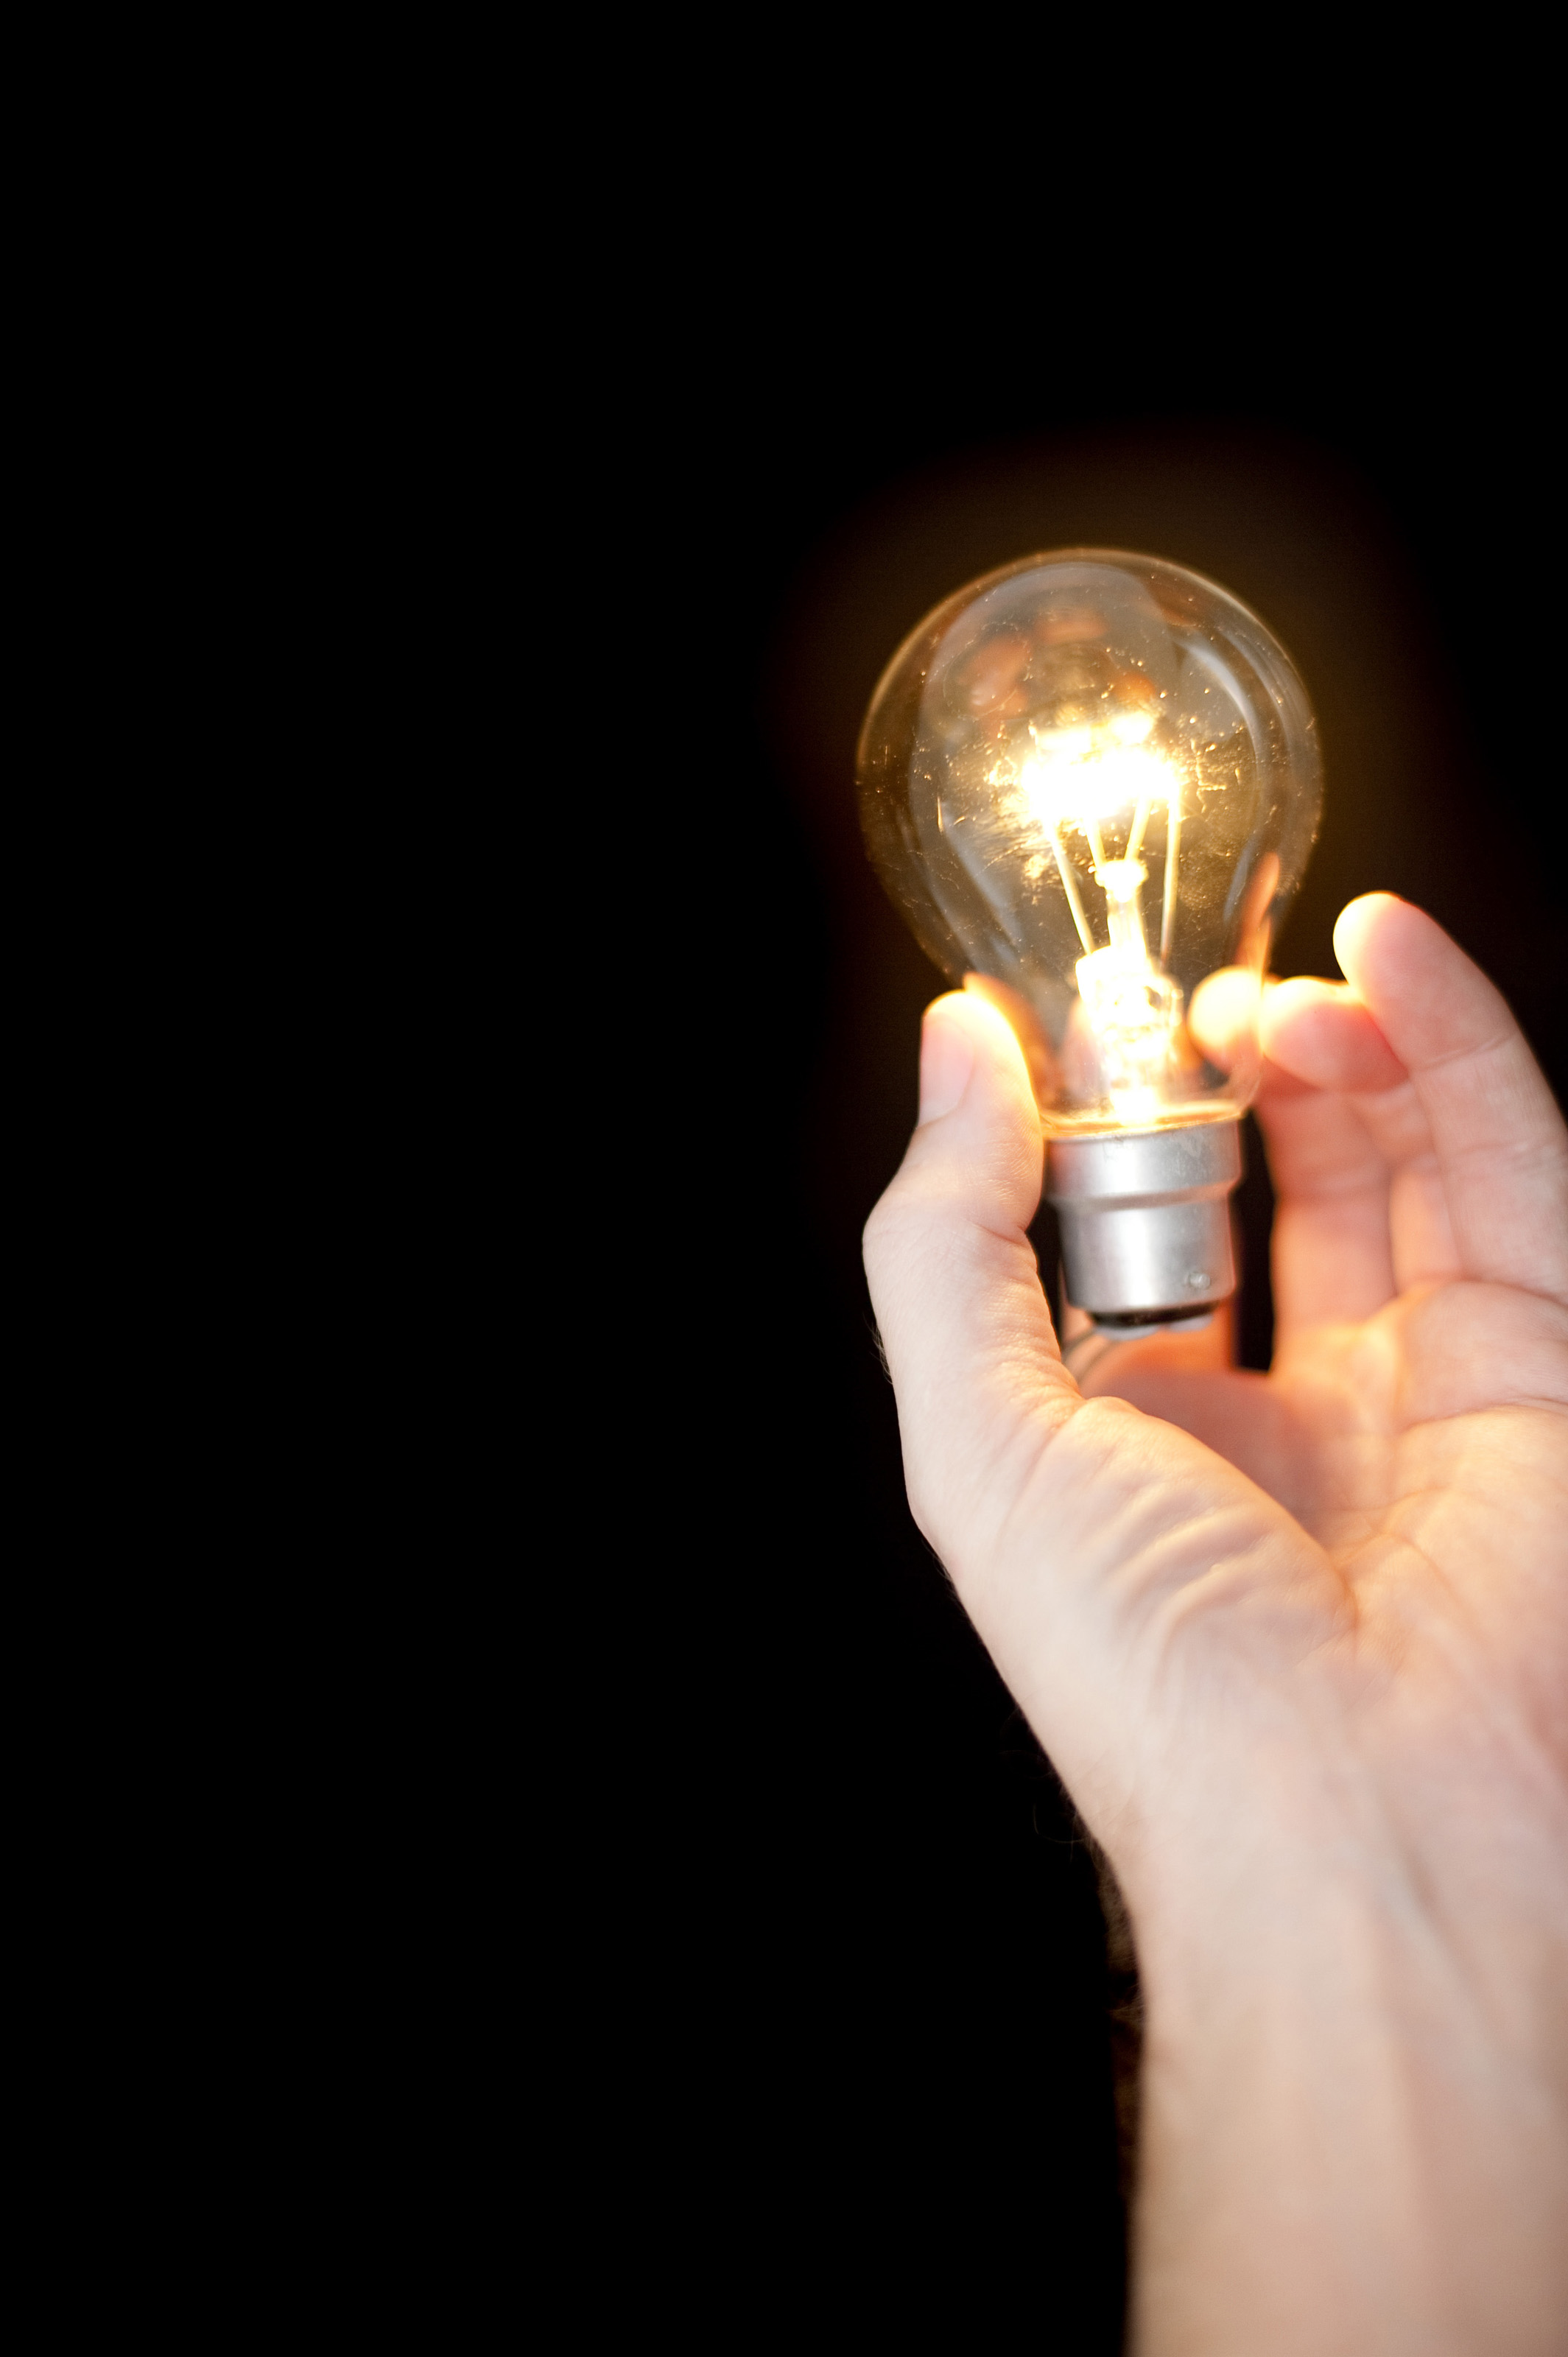 Free image of bright ideas